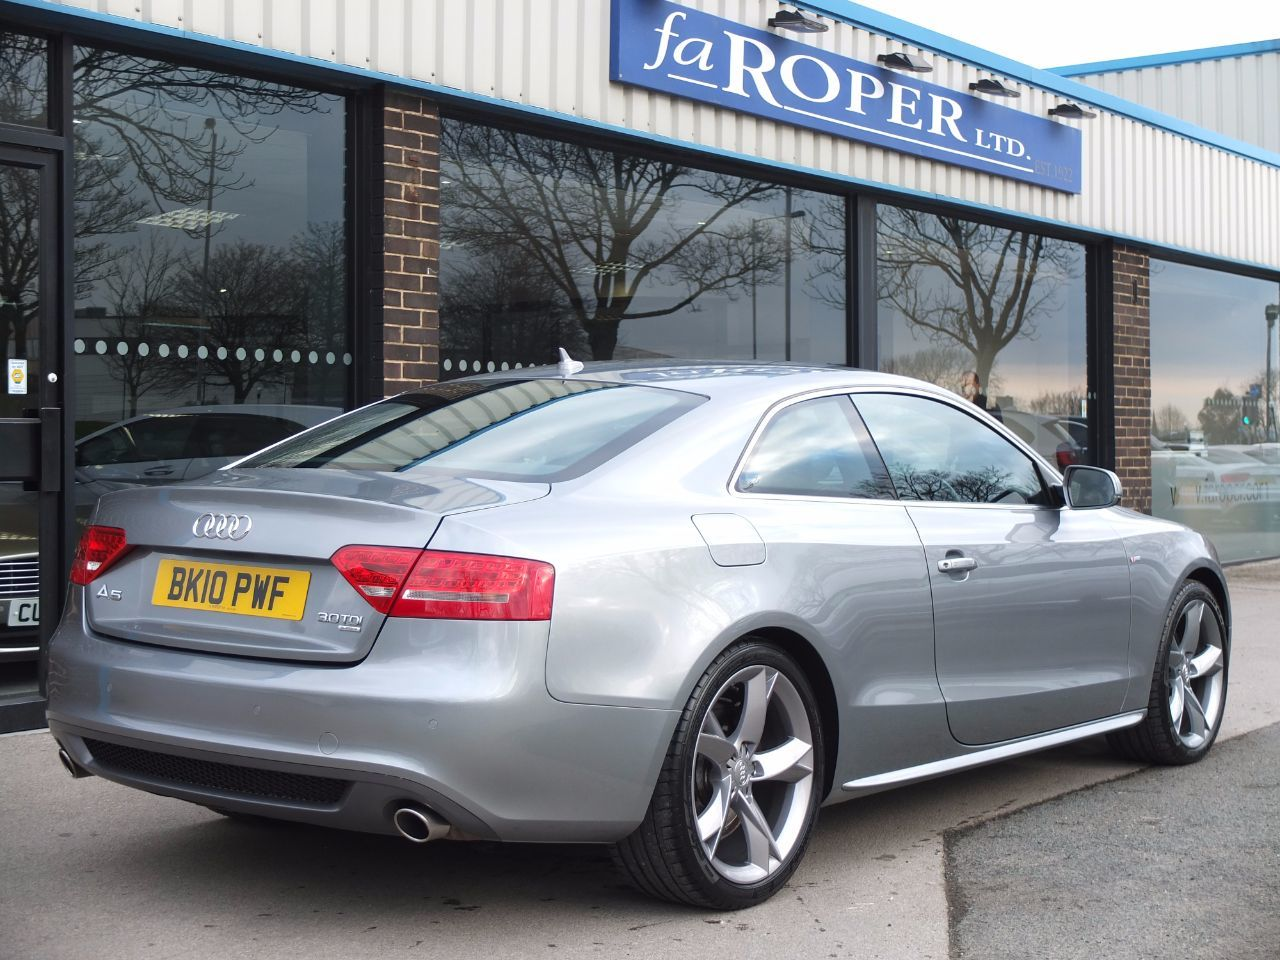 used audi a5 3 0 tdi quattro s line special edition coupe spec for sale in bradford west. Black Bedroom Furniture Sets. Home Design Ideas